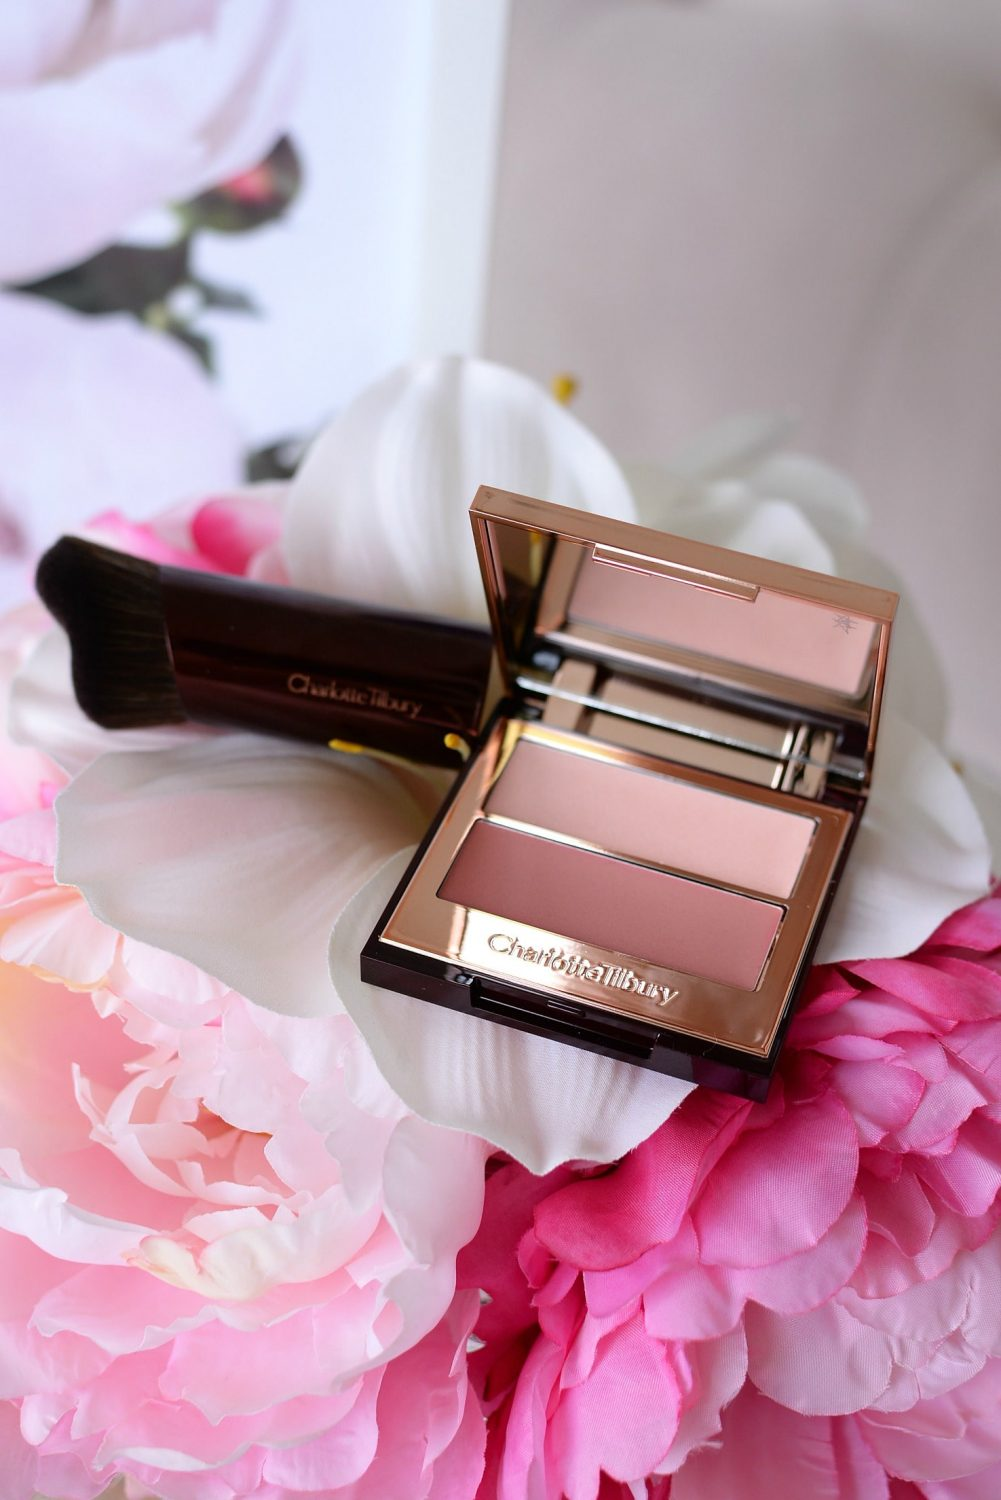 Charlotte Tilbury Pretty Youth Glow Filters Cheek Hug Brush